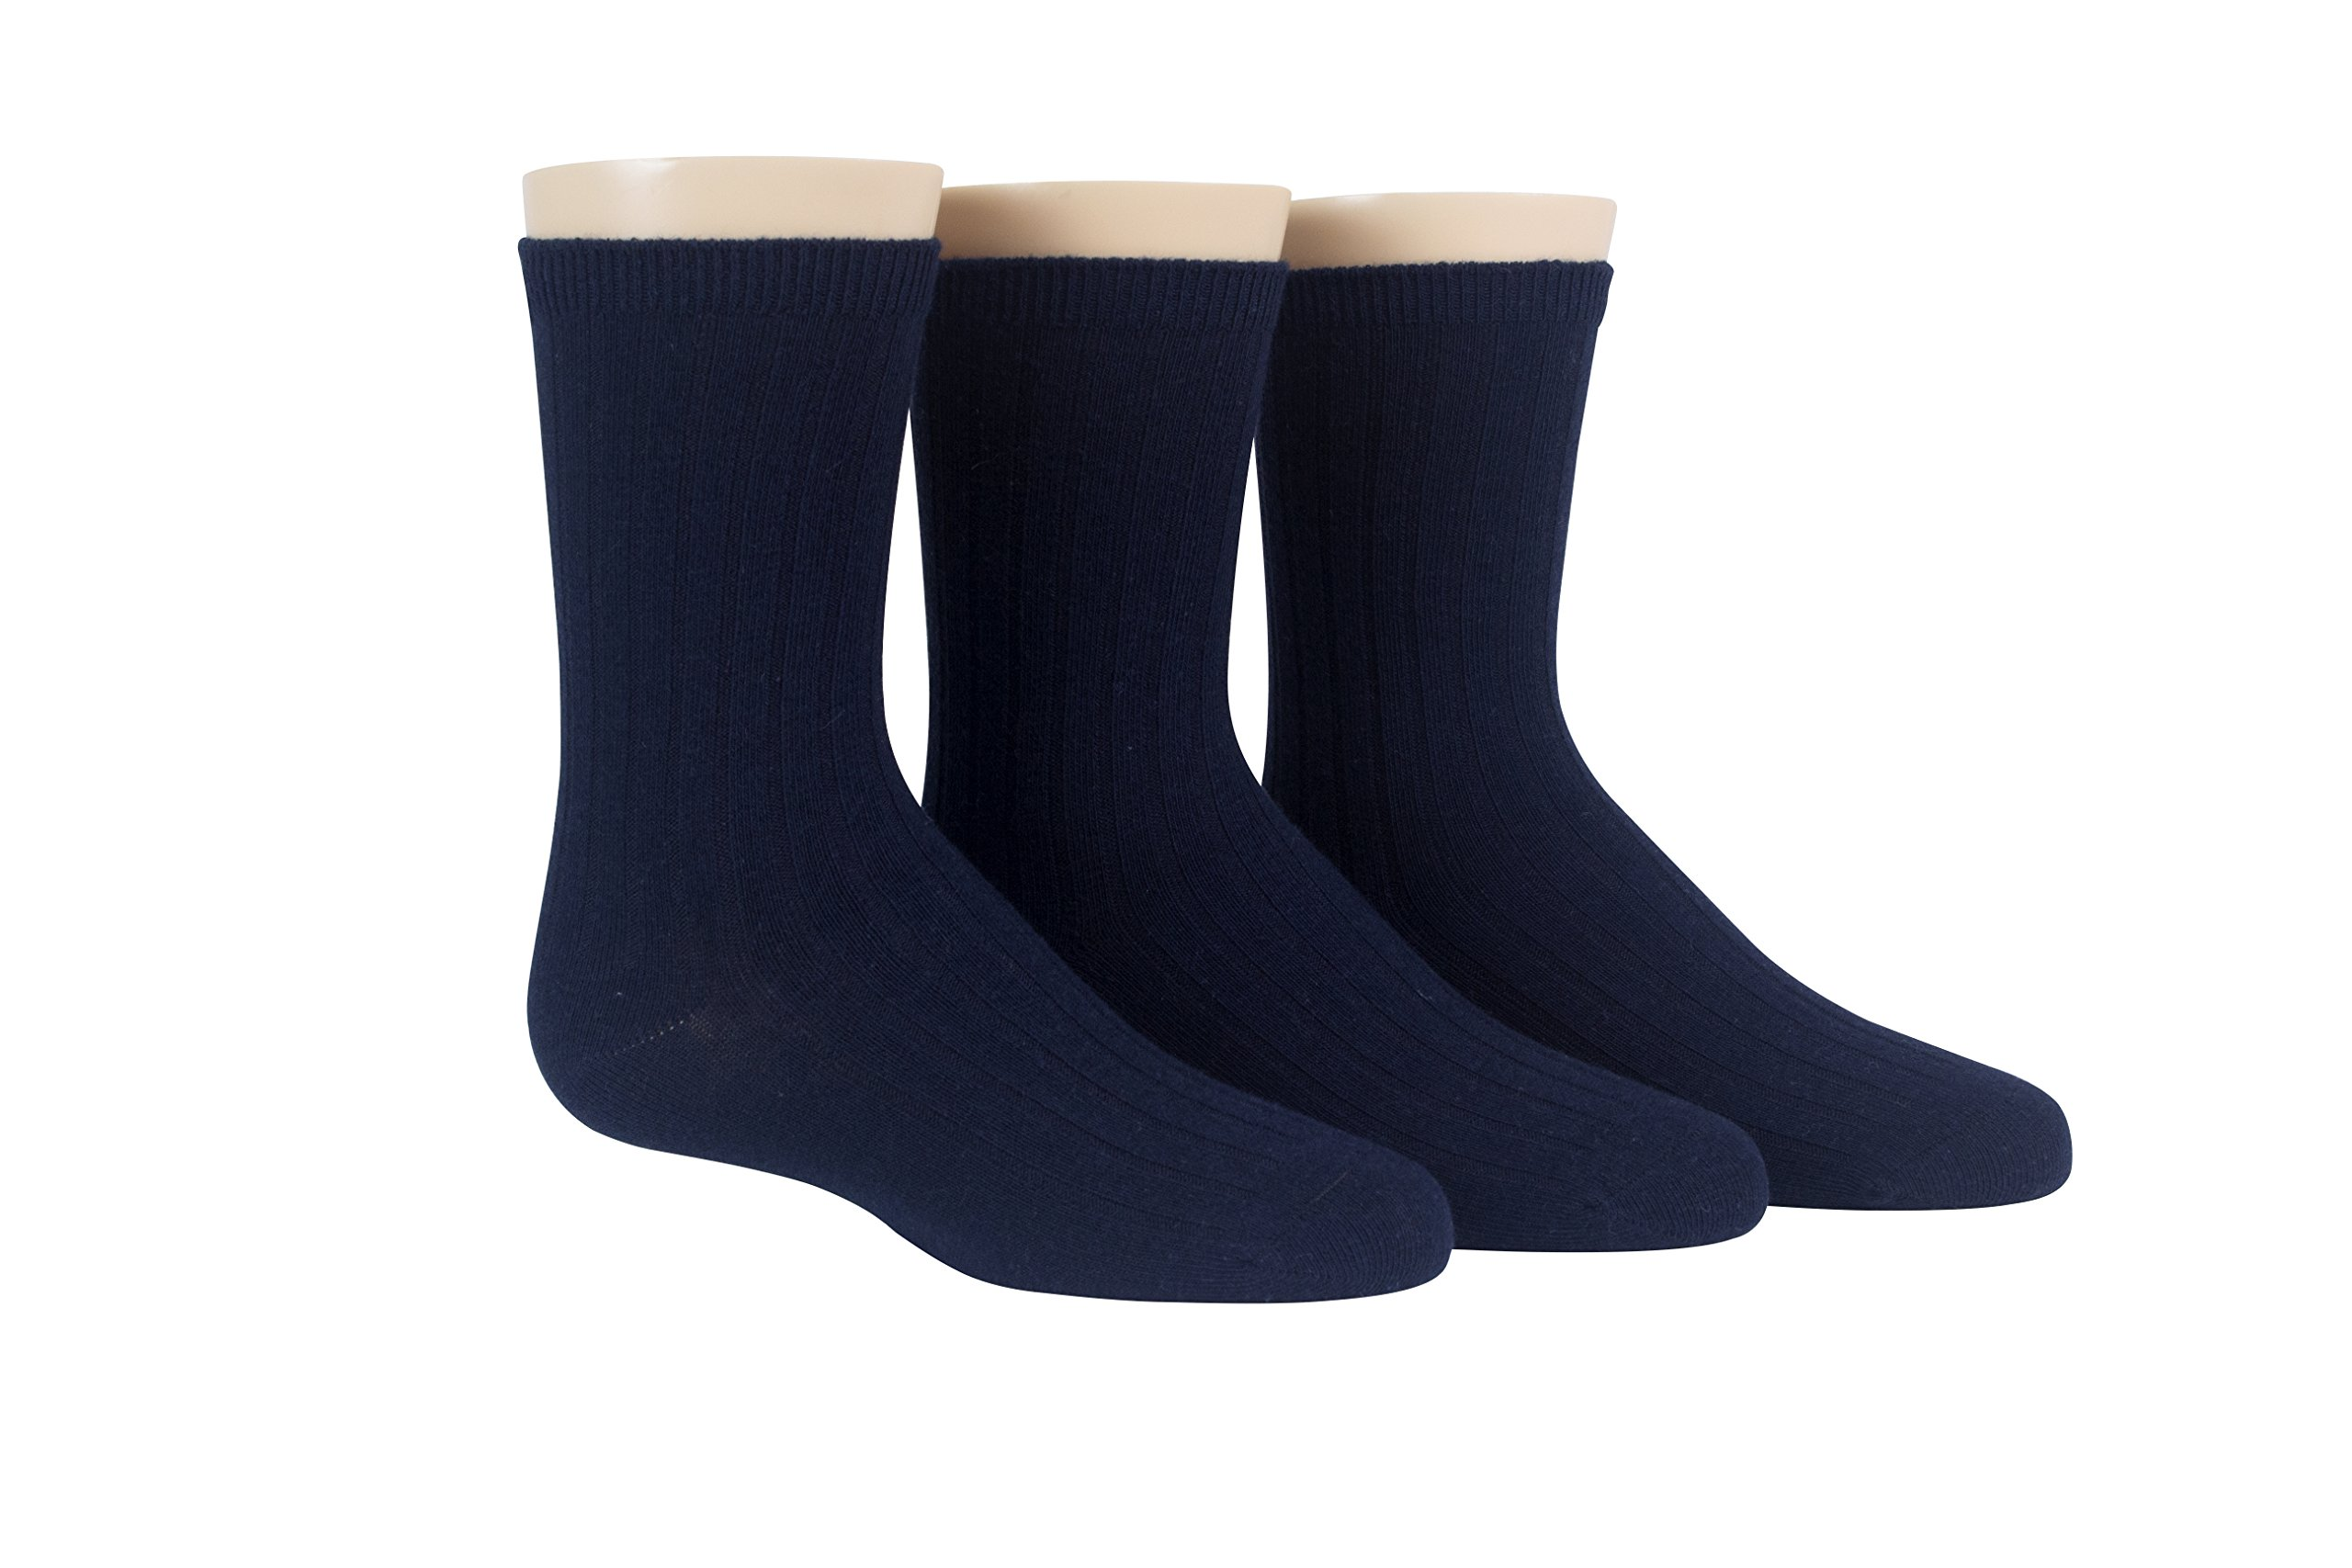 Stride Rite Little Boys' Comfort Seam Three Pack Ribbed Crew Socks, Navy, 7-8